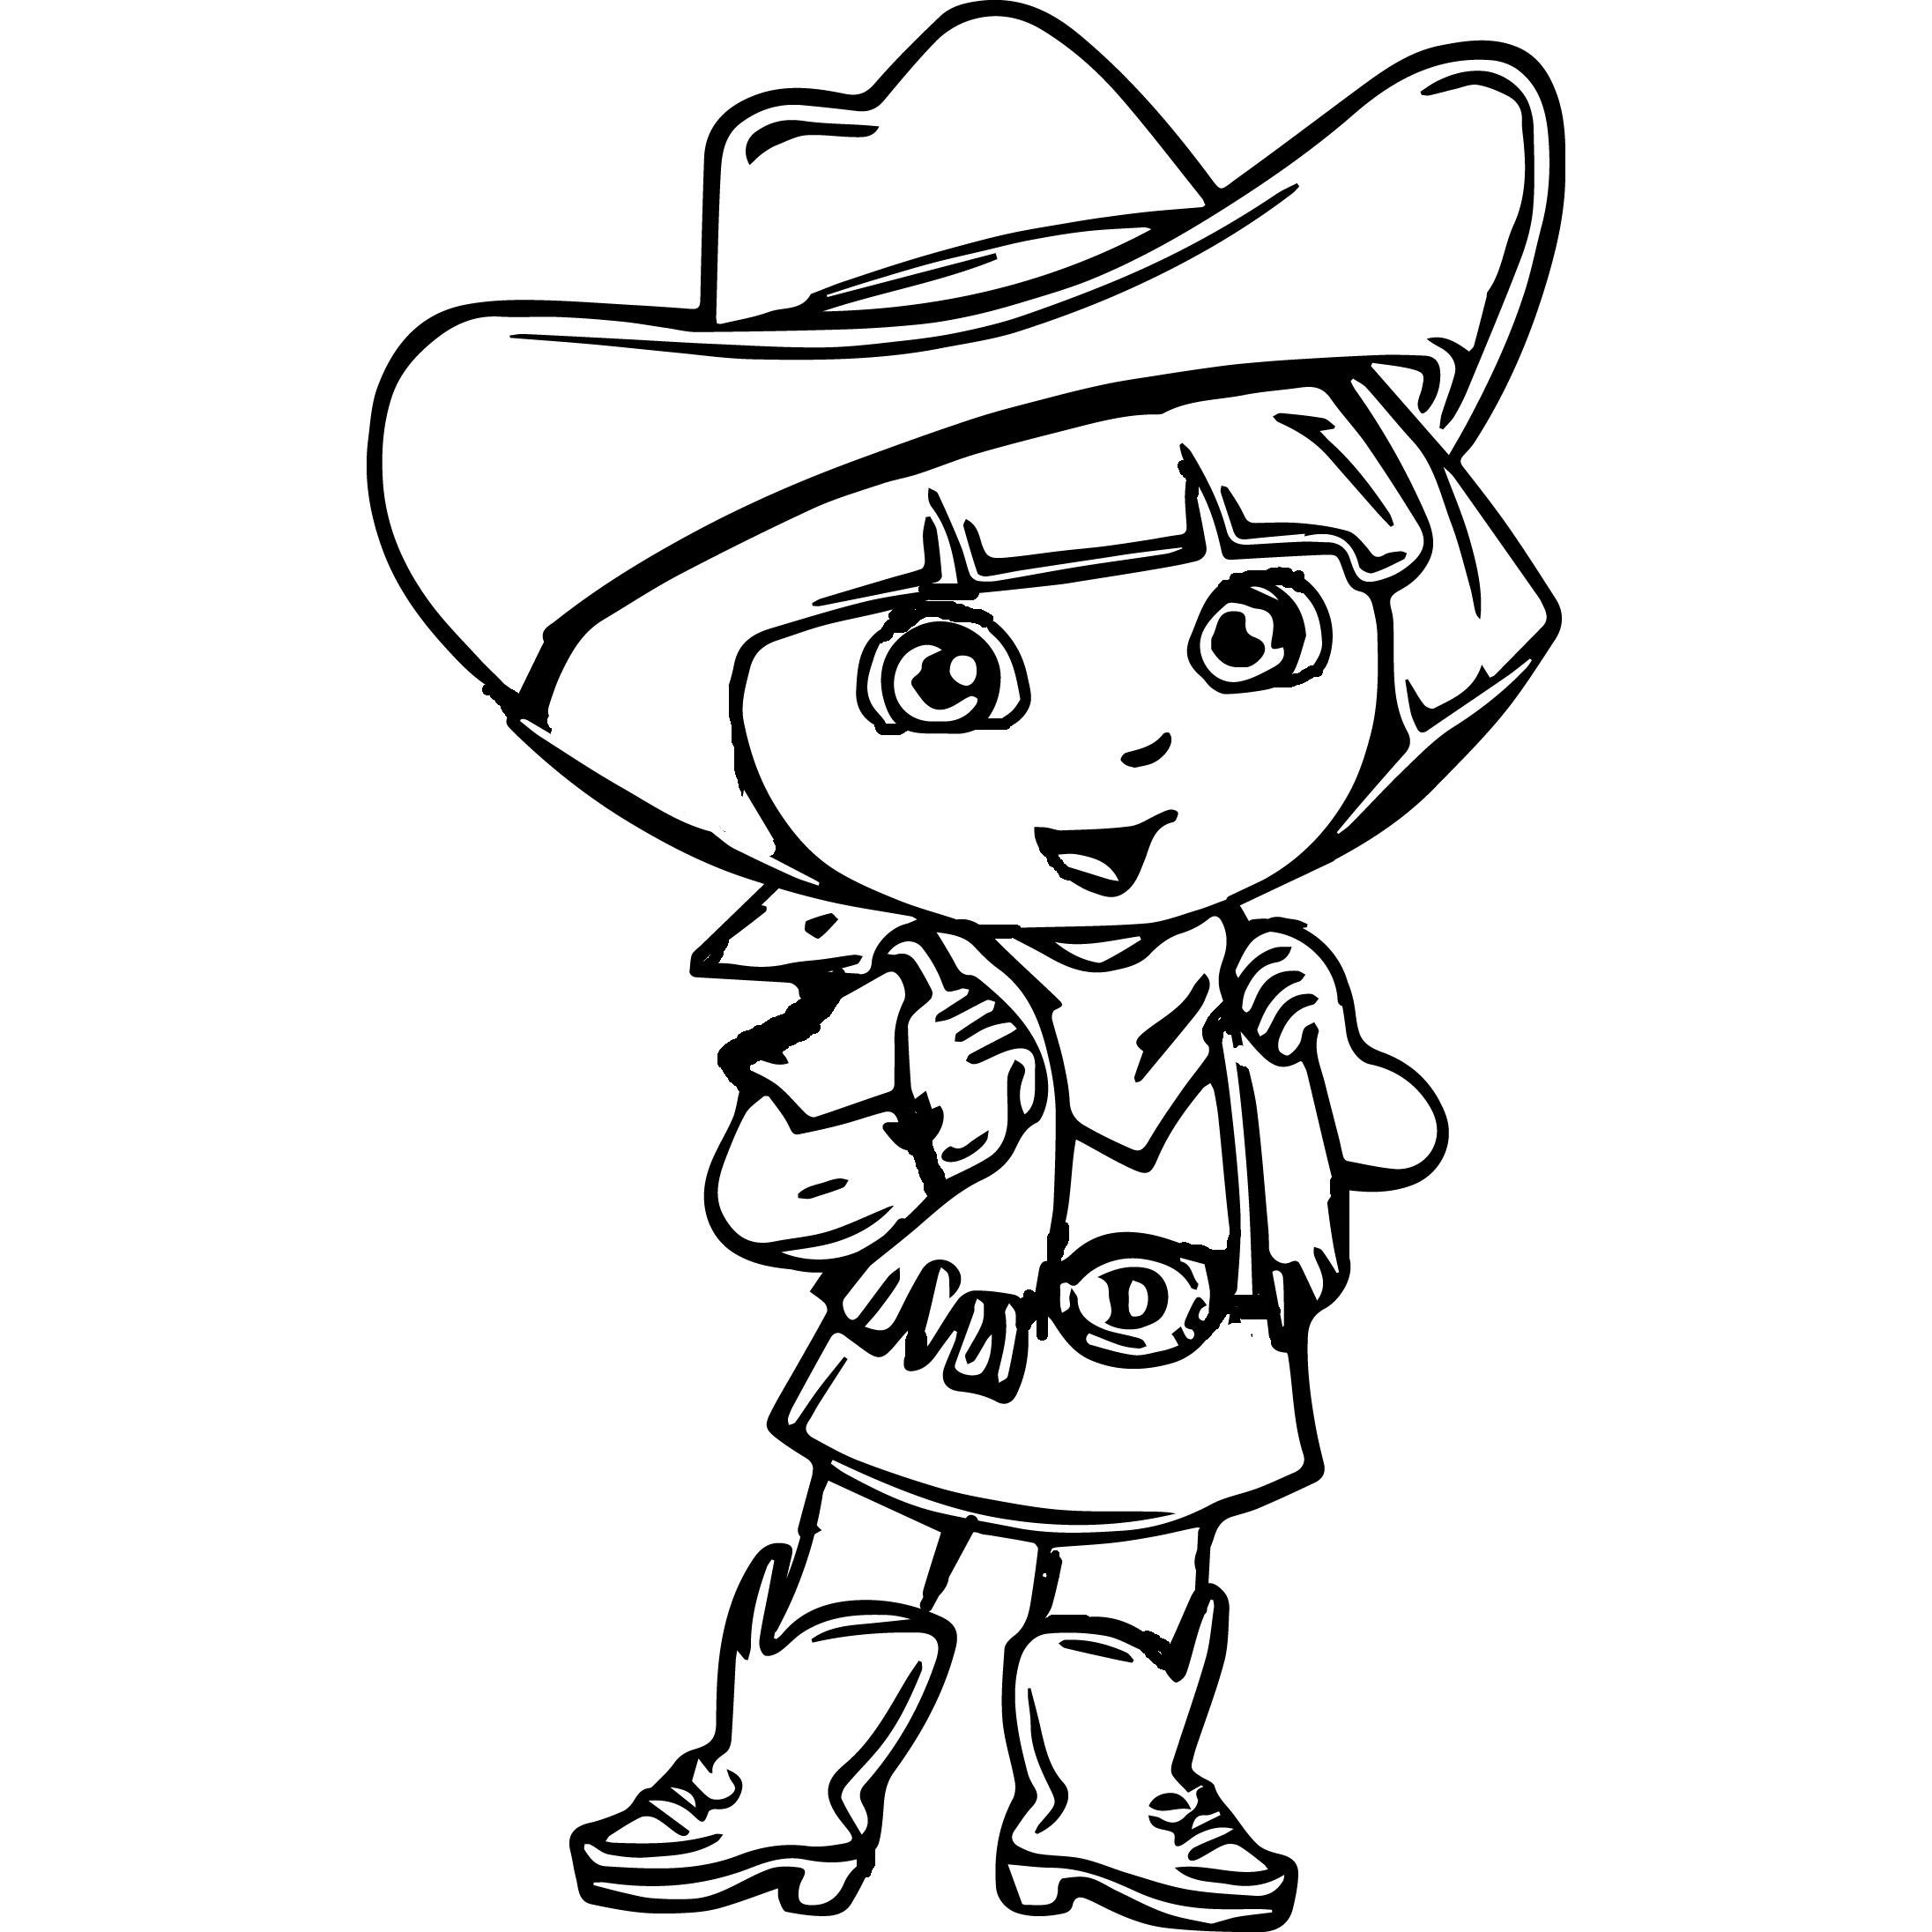 Dora The Explorer Coloring Pages And Sheets For Kids